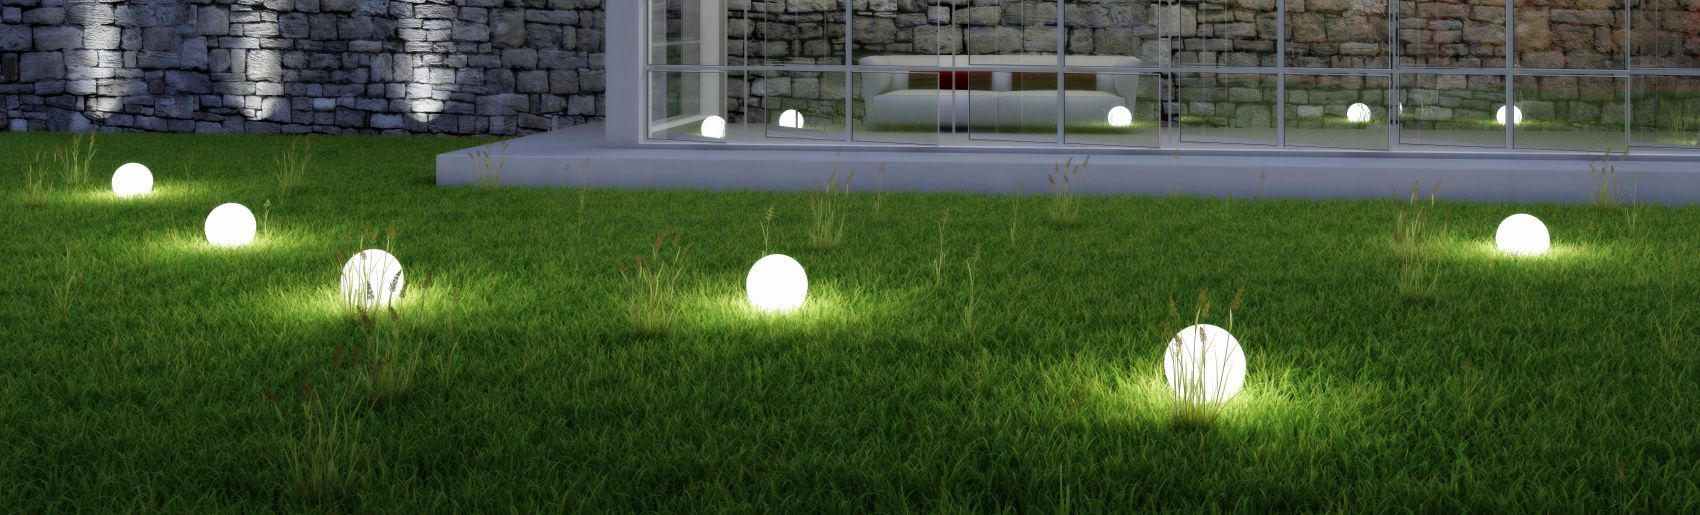 Local birmingham landscape lighting professionals leading providers of landscape lighting installation aloadofball